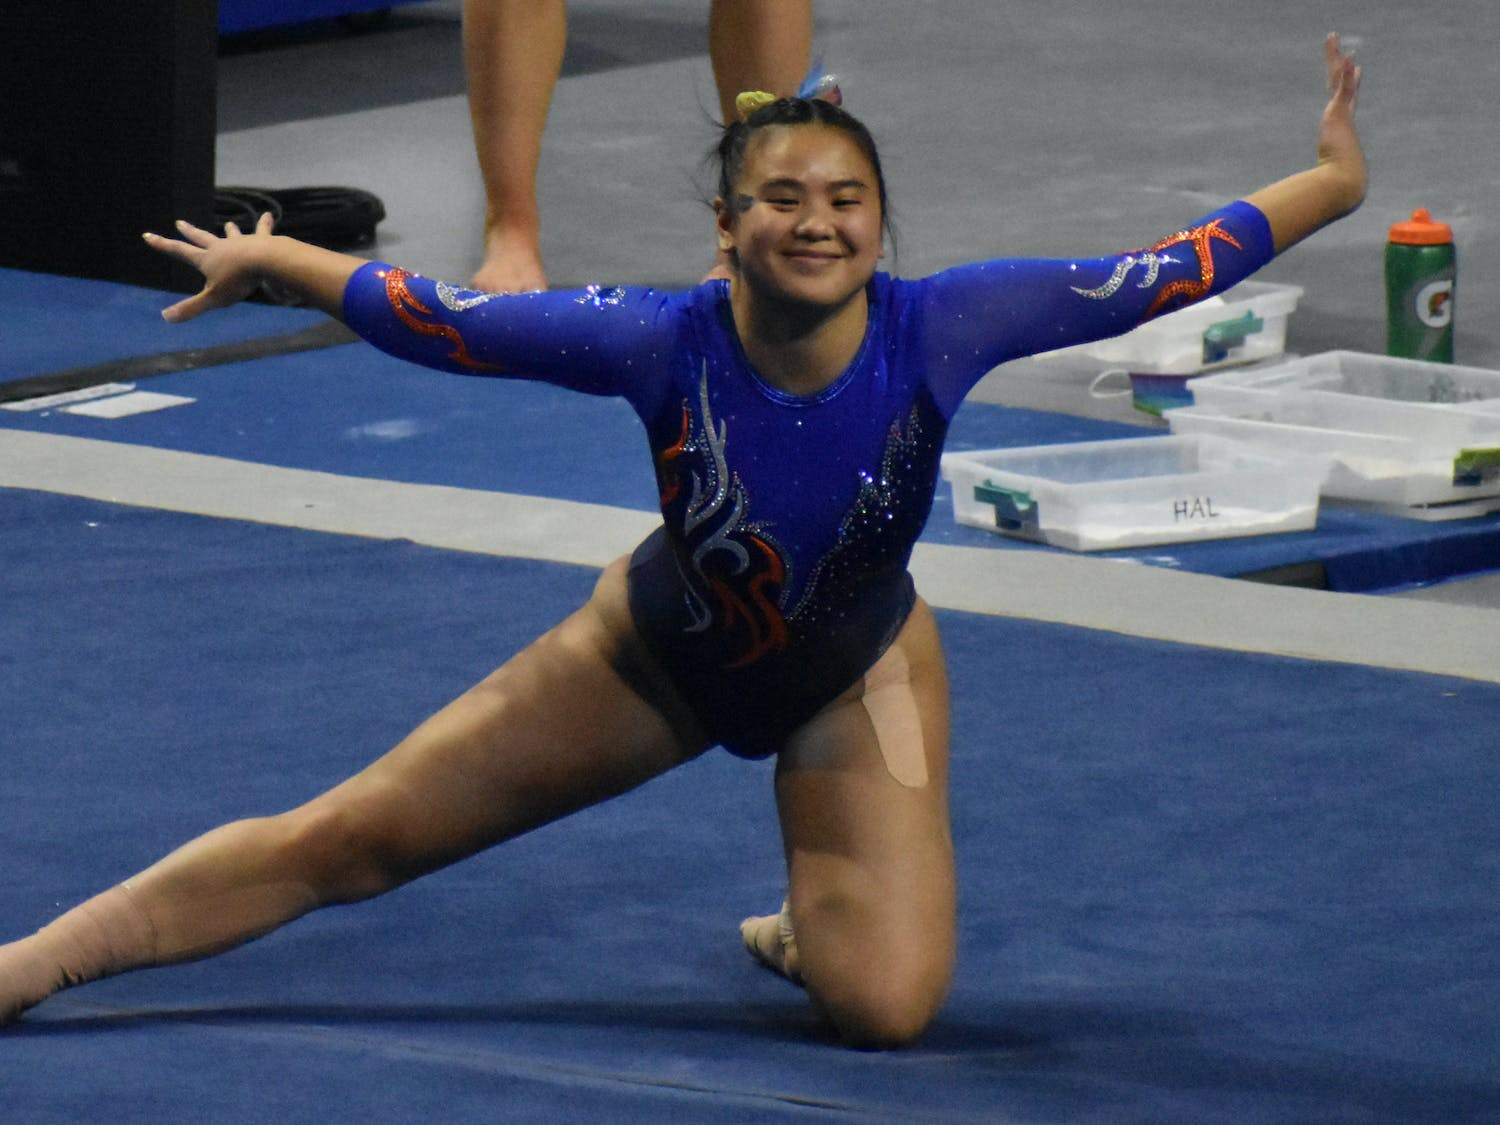 Lazzari's near-perfect score set a new personal best. Photo from UF-Mizzou game Jan. 29.